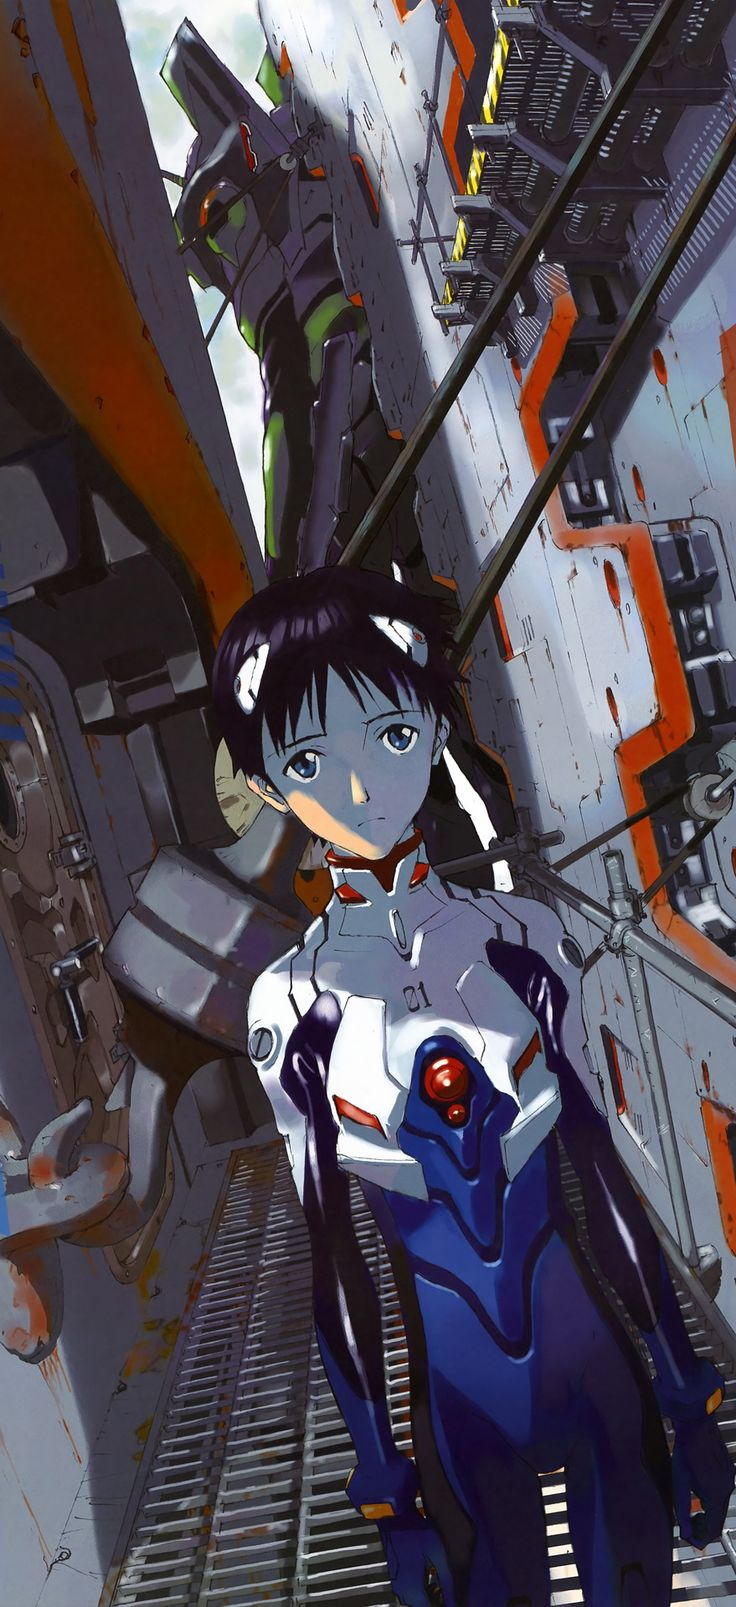 Neon Genesis Evangelion: Shinji Armour in anime The armour for boys look a lot more rigid (so probably more protective, how sexist) but they have the same powers as the girls so it actually doesn't make much difference